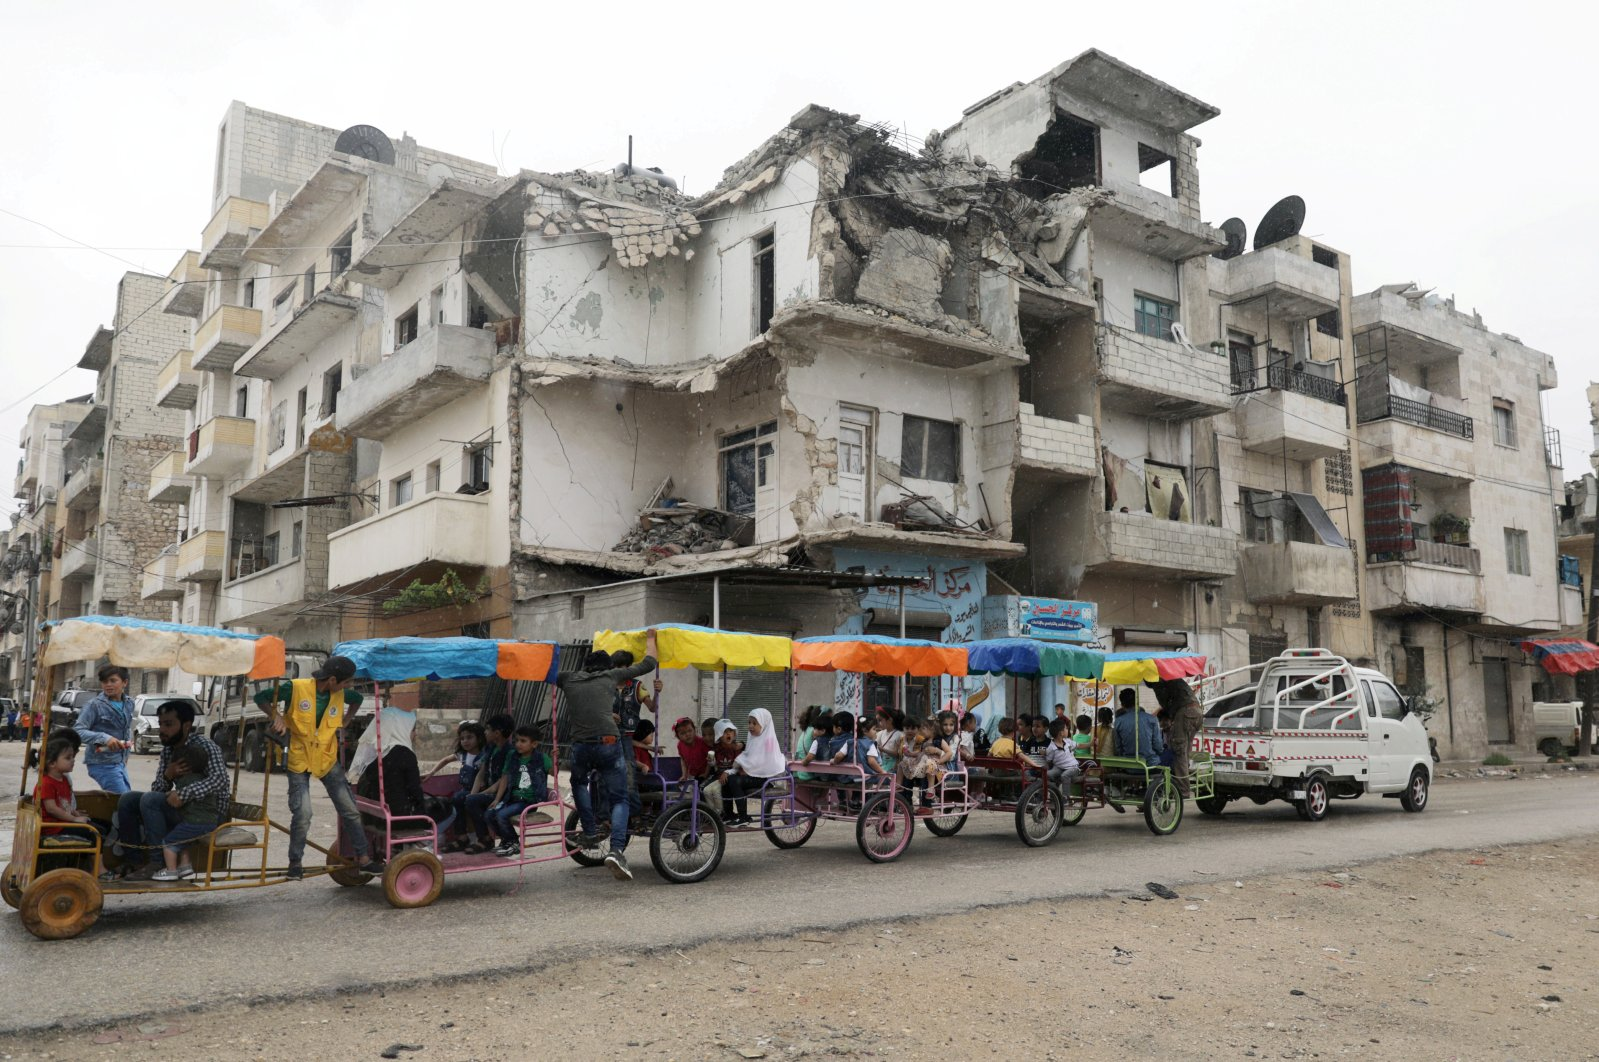 Children ride in carts past a damaged building on the first day of the Muslim holiday of Eid al-Fitr amid the global outbreak of the coronavirus, in the opposition-held Idlib city, northwest Syria, May 24, 2020. (REUTERS Photo)